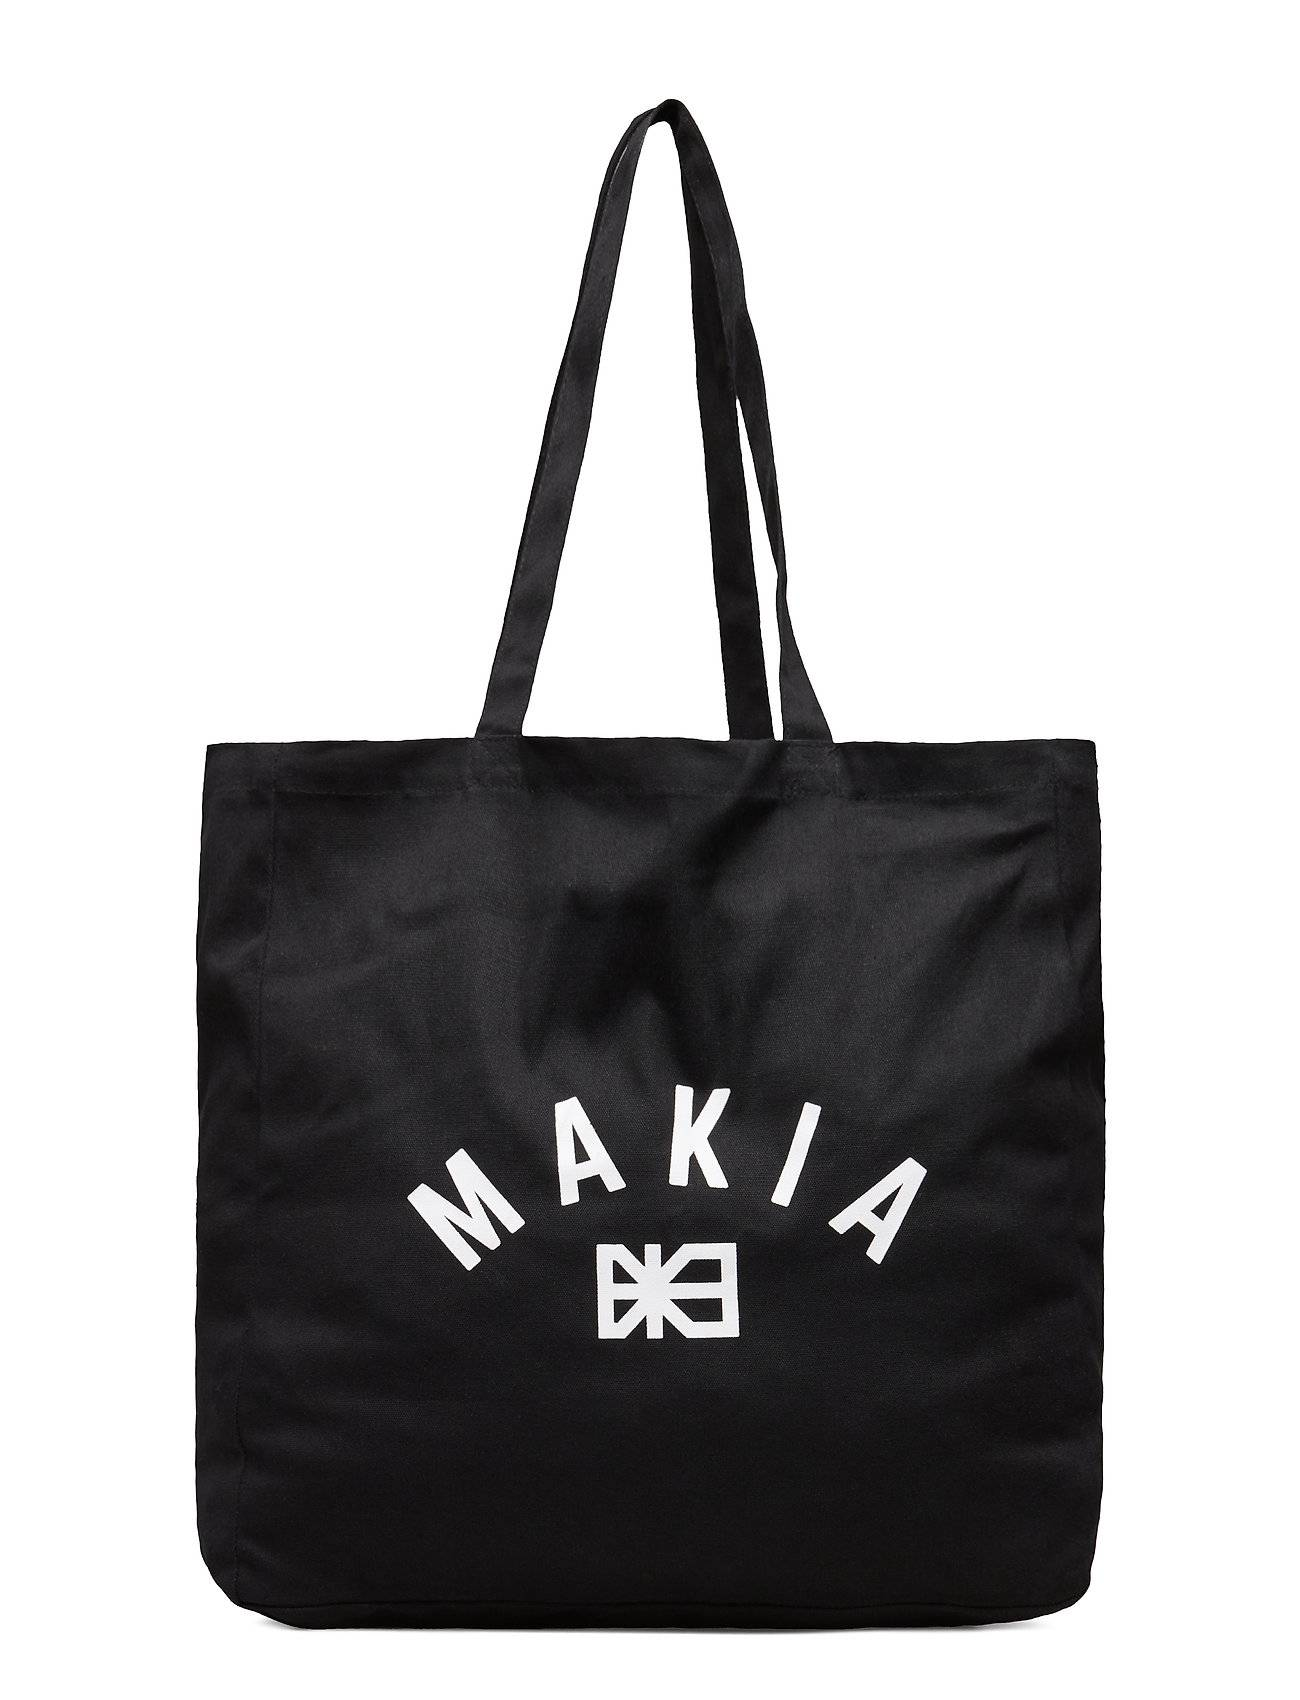 Makia Brand Day Tote Bag Bags Shoppers Casual Shoppers Musta Makia